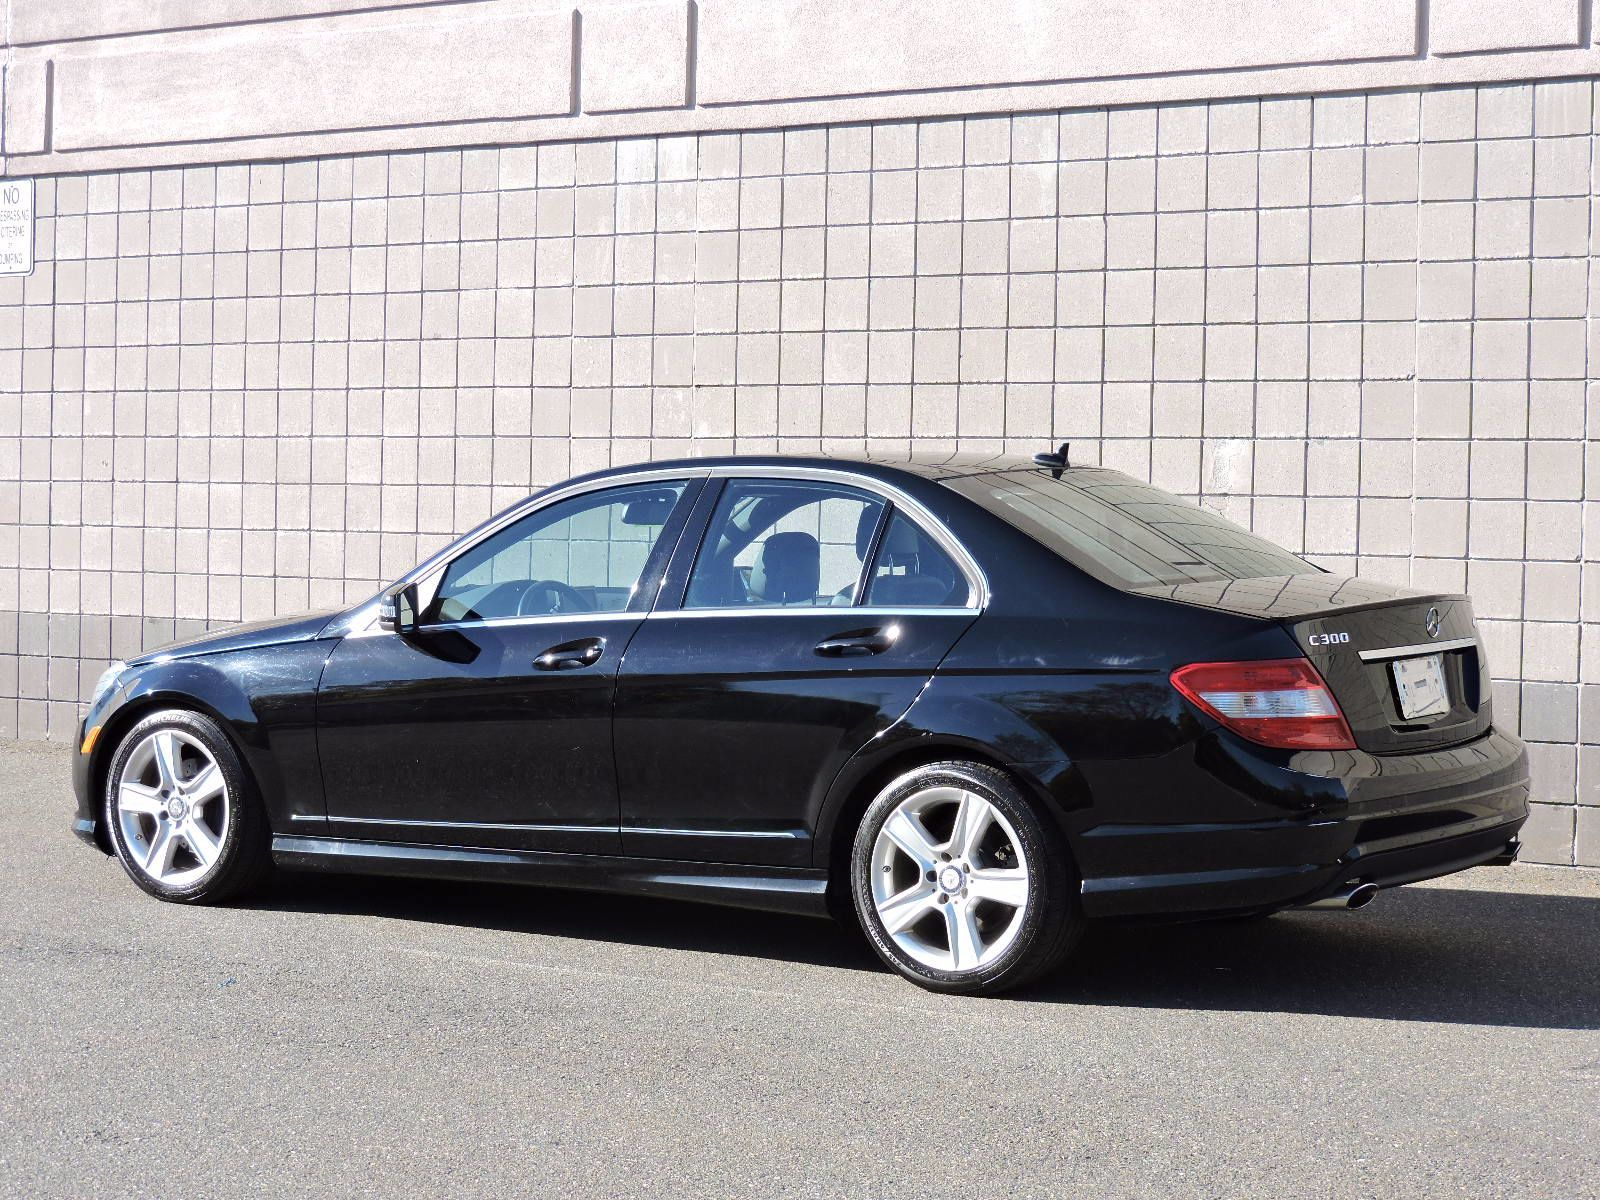 Used 2011 mercedes benz c300 c300 sport at saugus auto mall for Mercedes benz c service cost